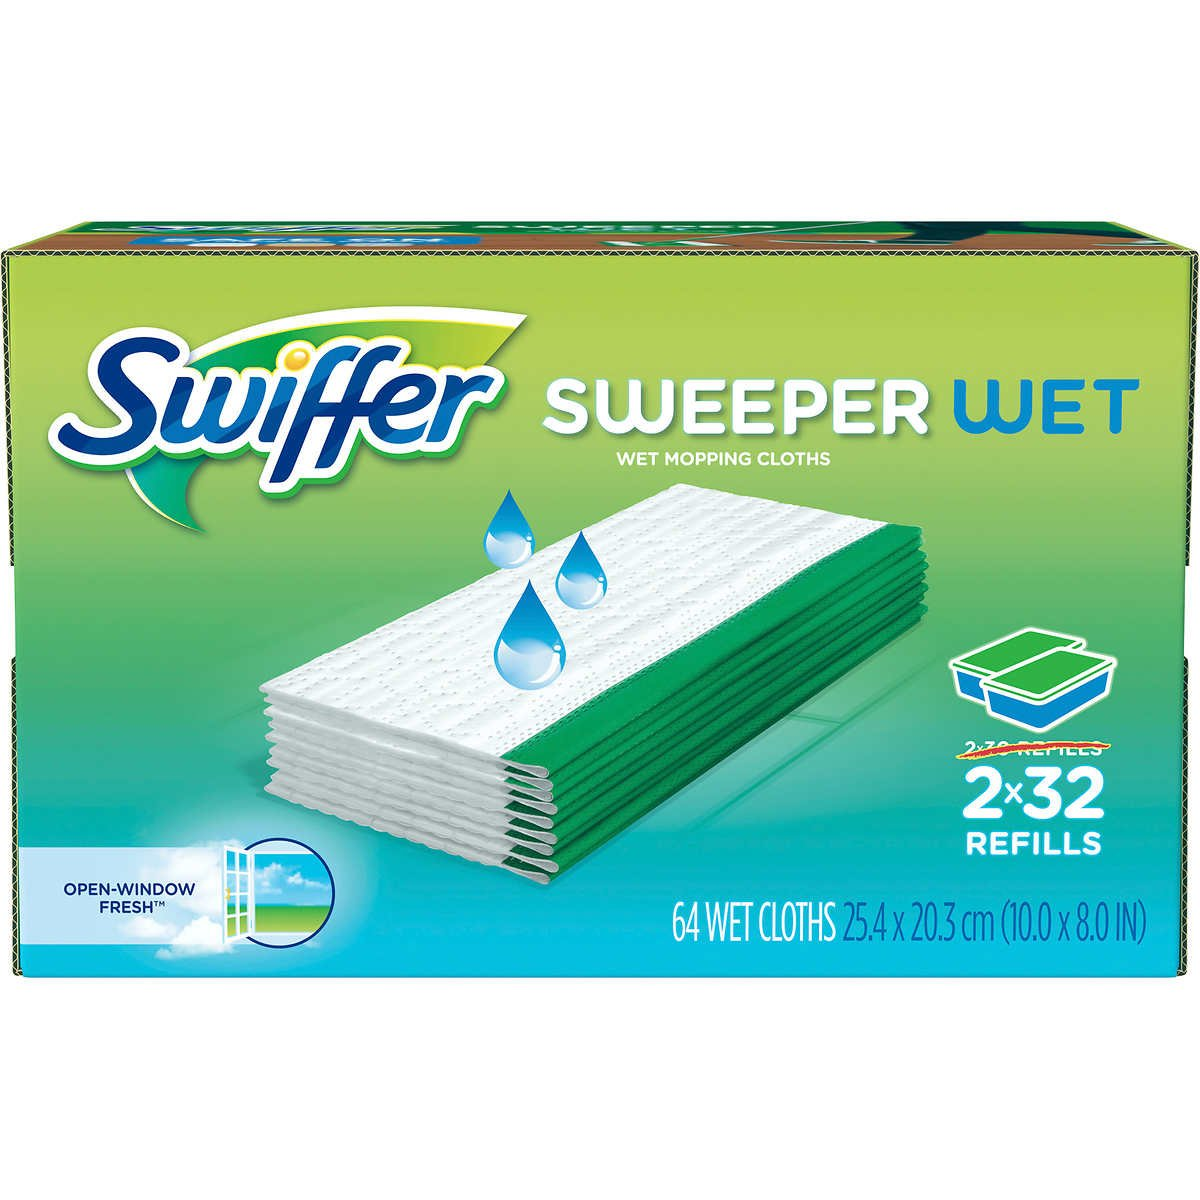 Swiffer Sweeper Wet Mopping Cloth Refill - Open Window Fresh - 32 wet cloths - 2 pk